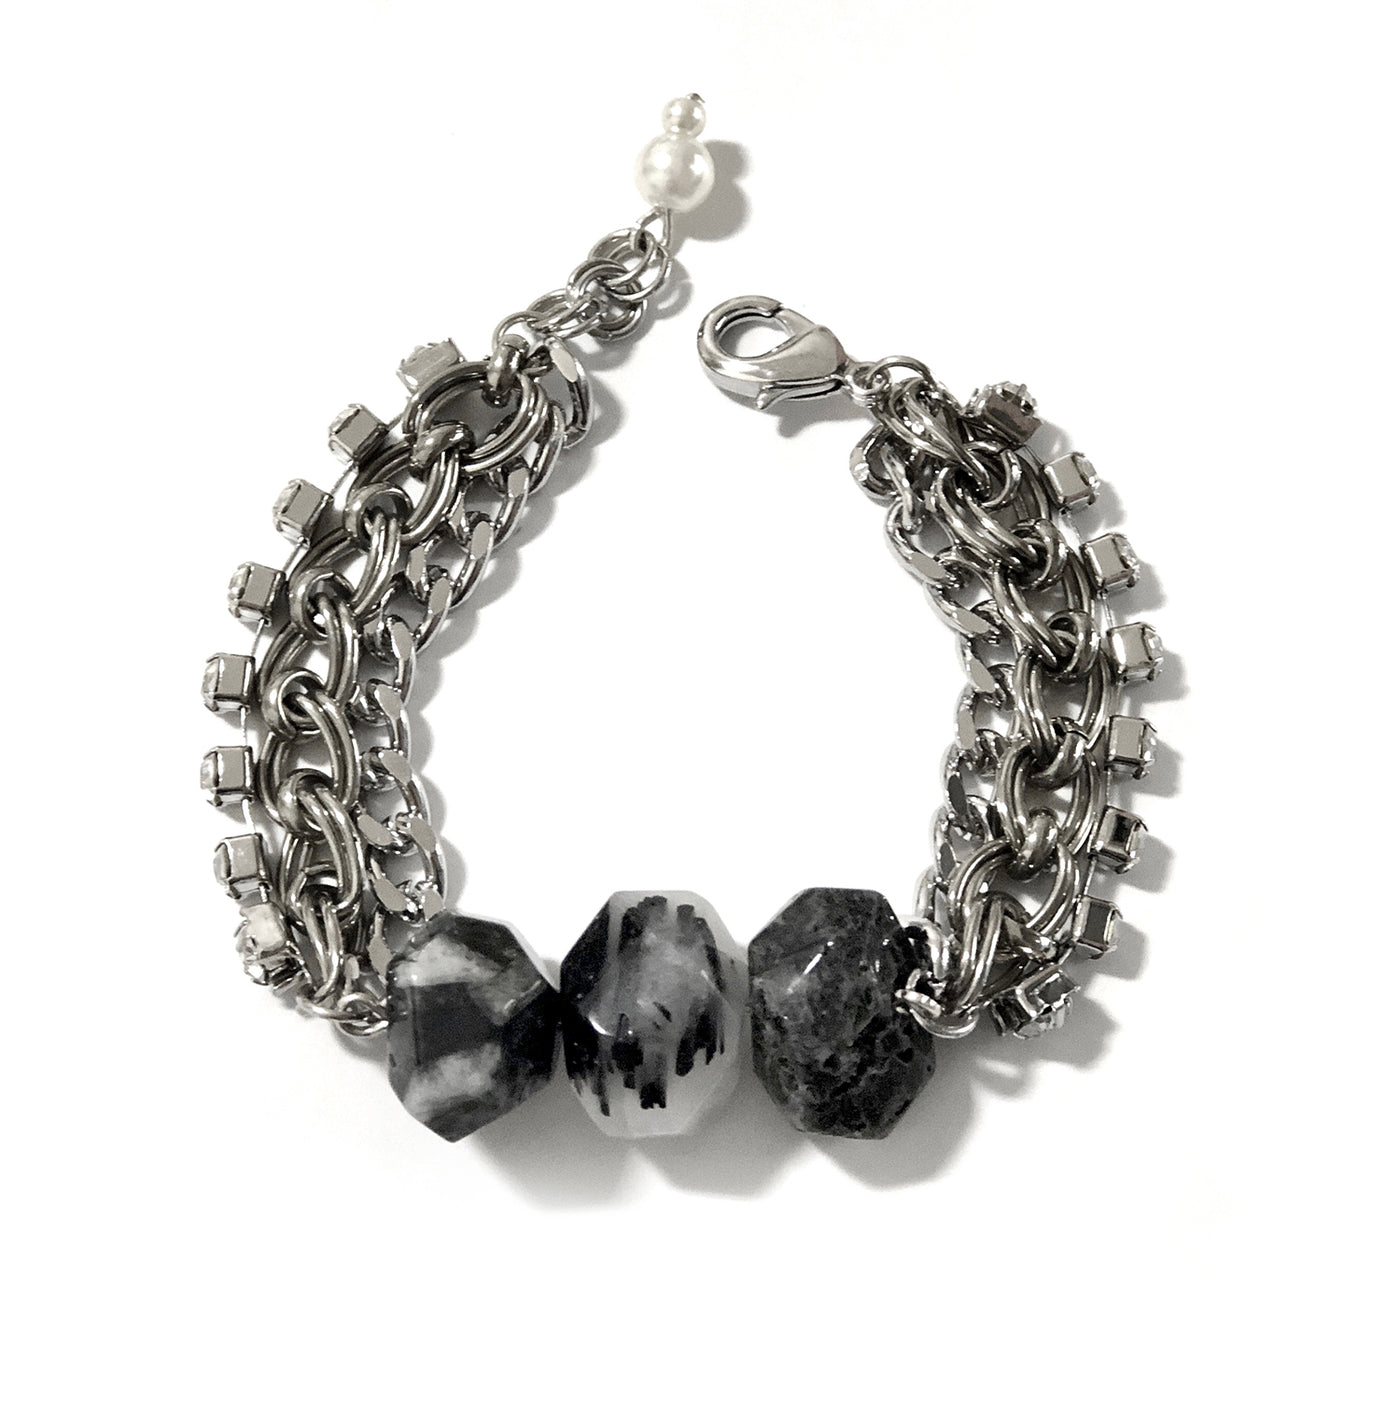 Black Rutilated Quartz Crystals Bracelet - Chainless Brain